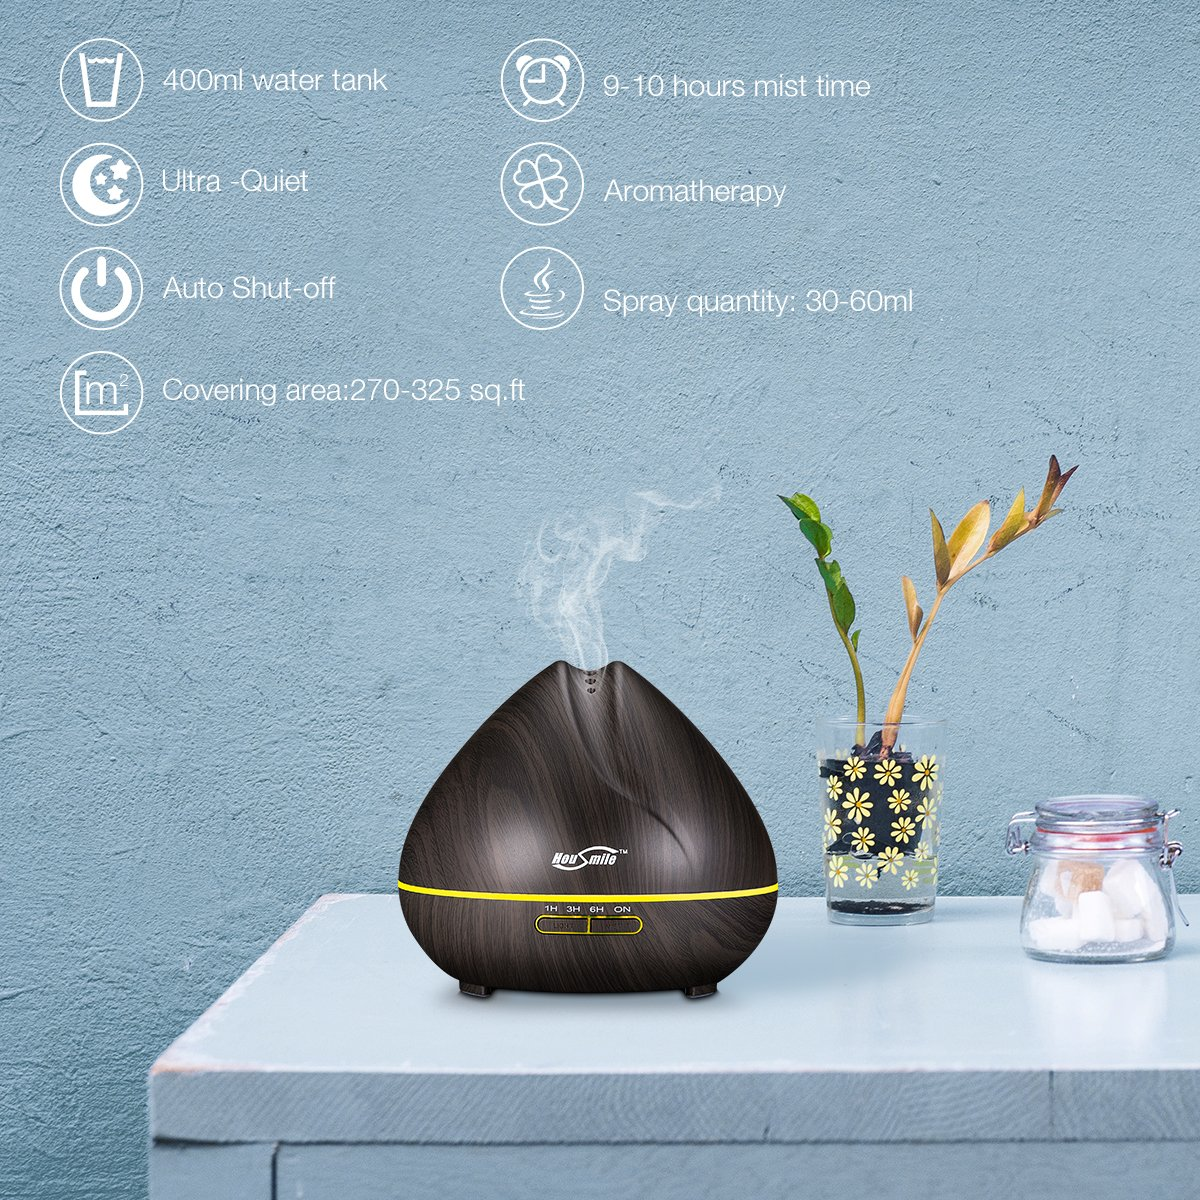 Housmile 400ml Aromatherapy Essential Oil Diffuser Ultrasonic Cool Mist Humidifier with 7 Color LED Lights Waterless Auto Shut-off, Wood Grain